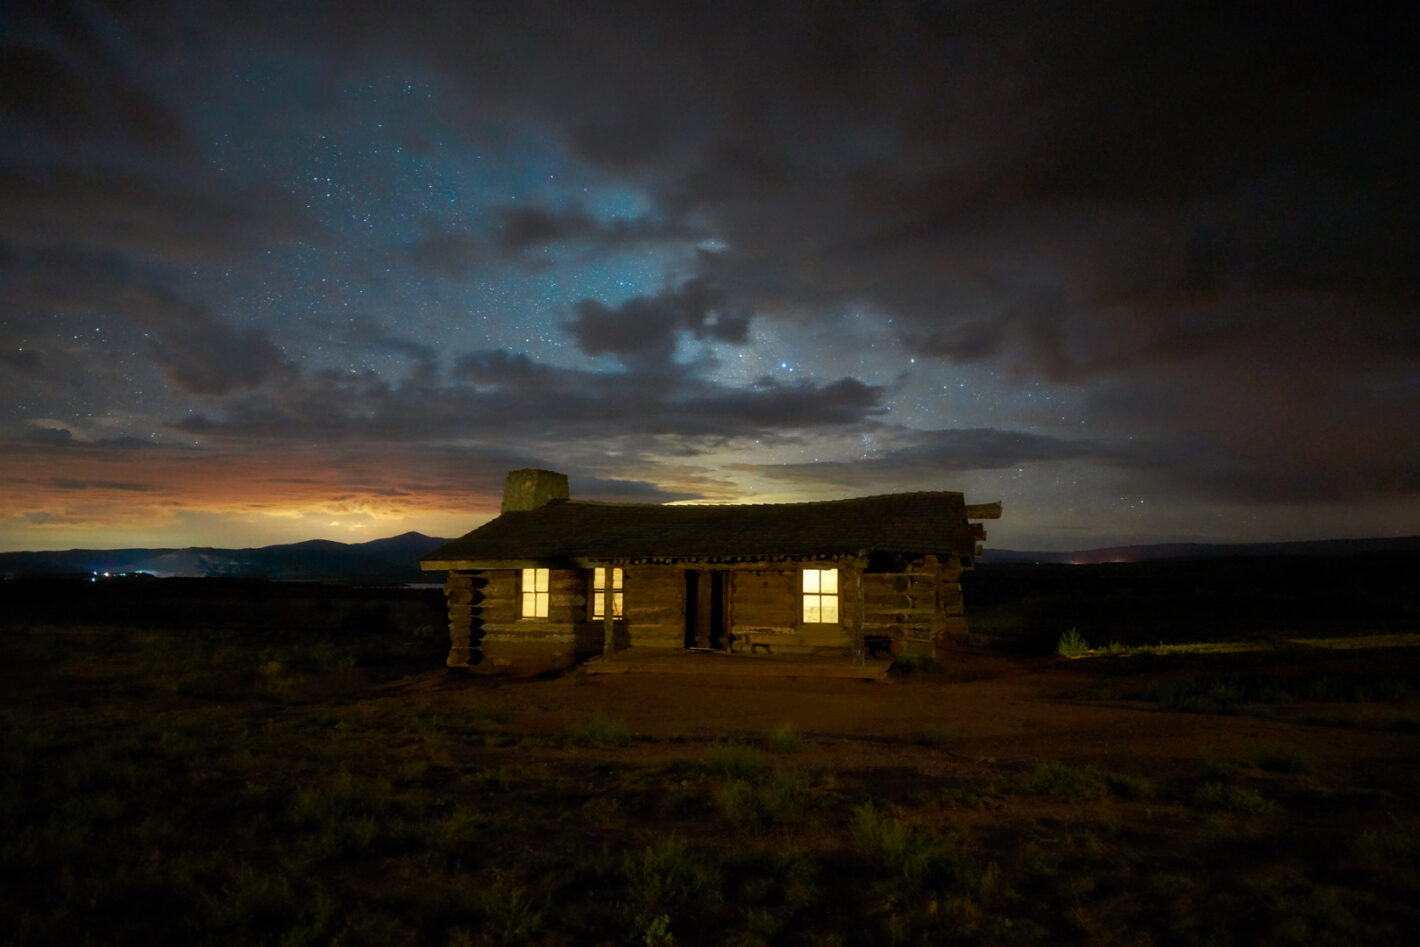 Phantom Cabin, Ghost Ranch in New Mexico. Sony a7RIV, 18mm, 20s, 1 exposure, ISO 10000, f2.8